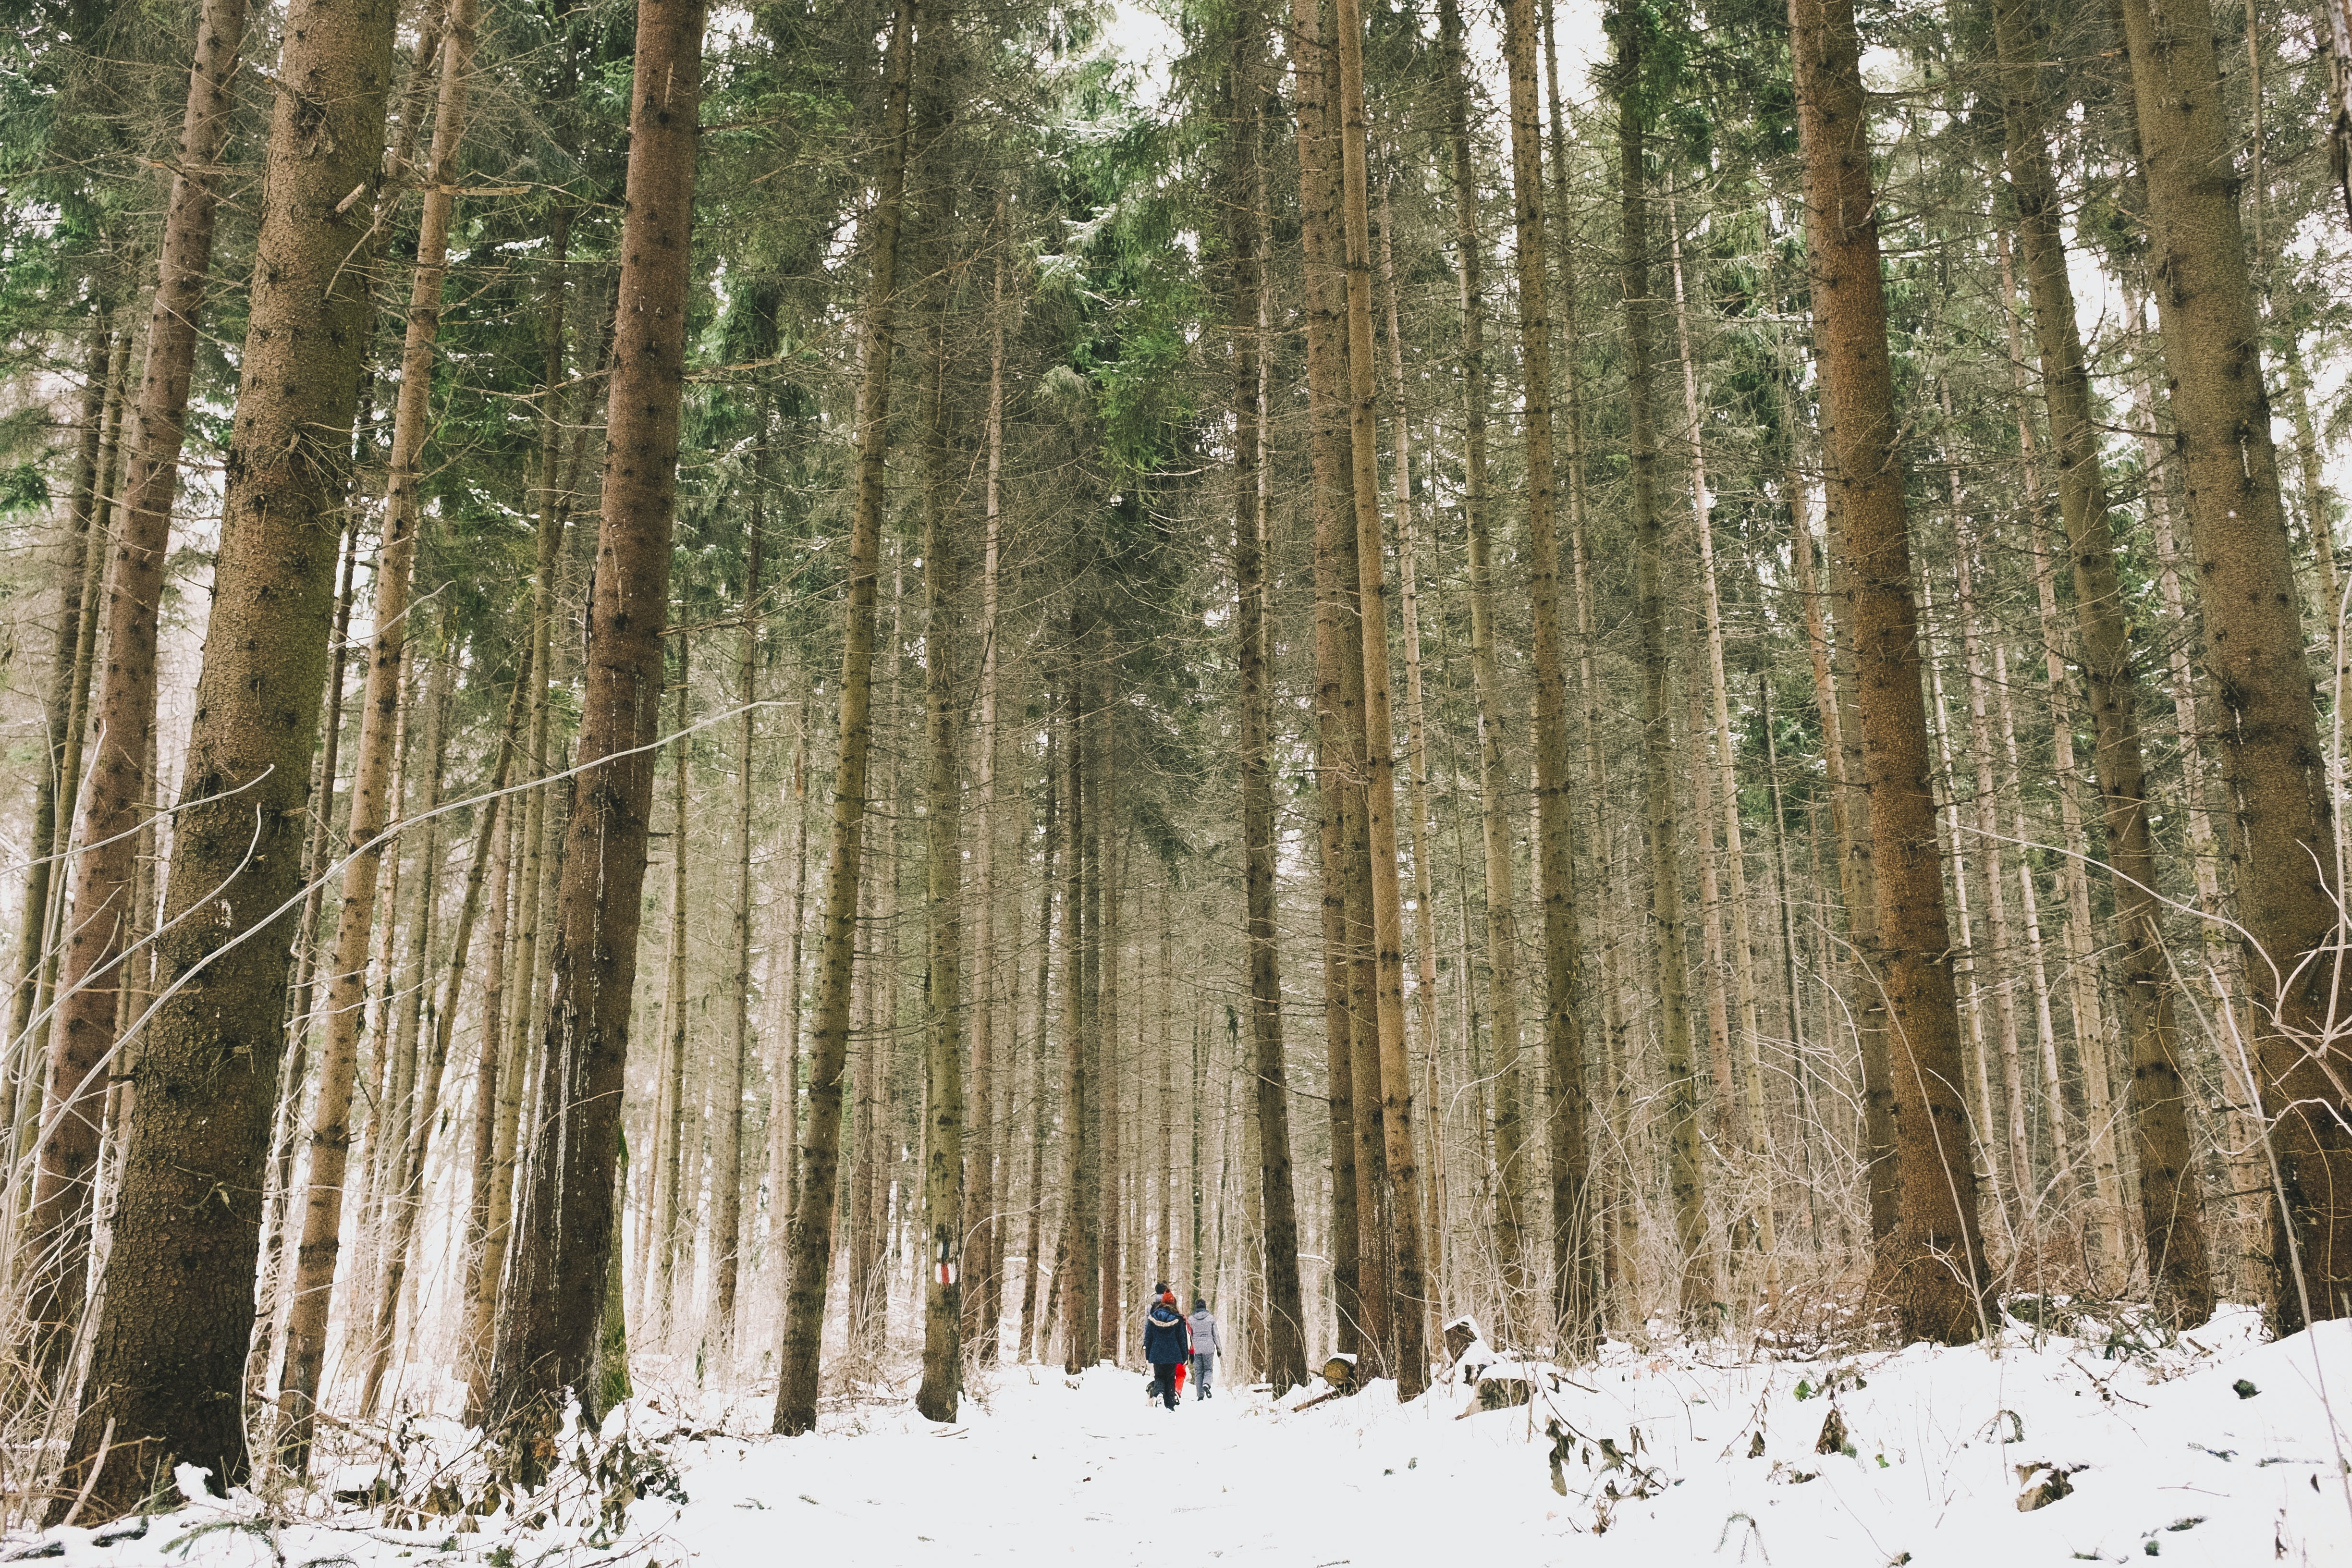 Several people on the snowy floor of a pine forest in Feleacu